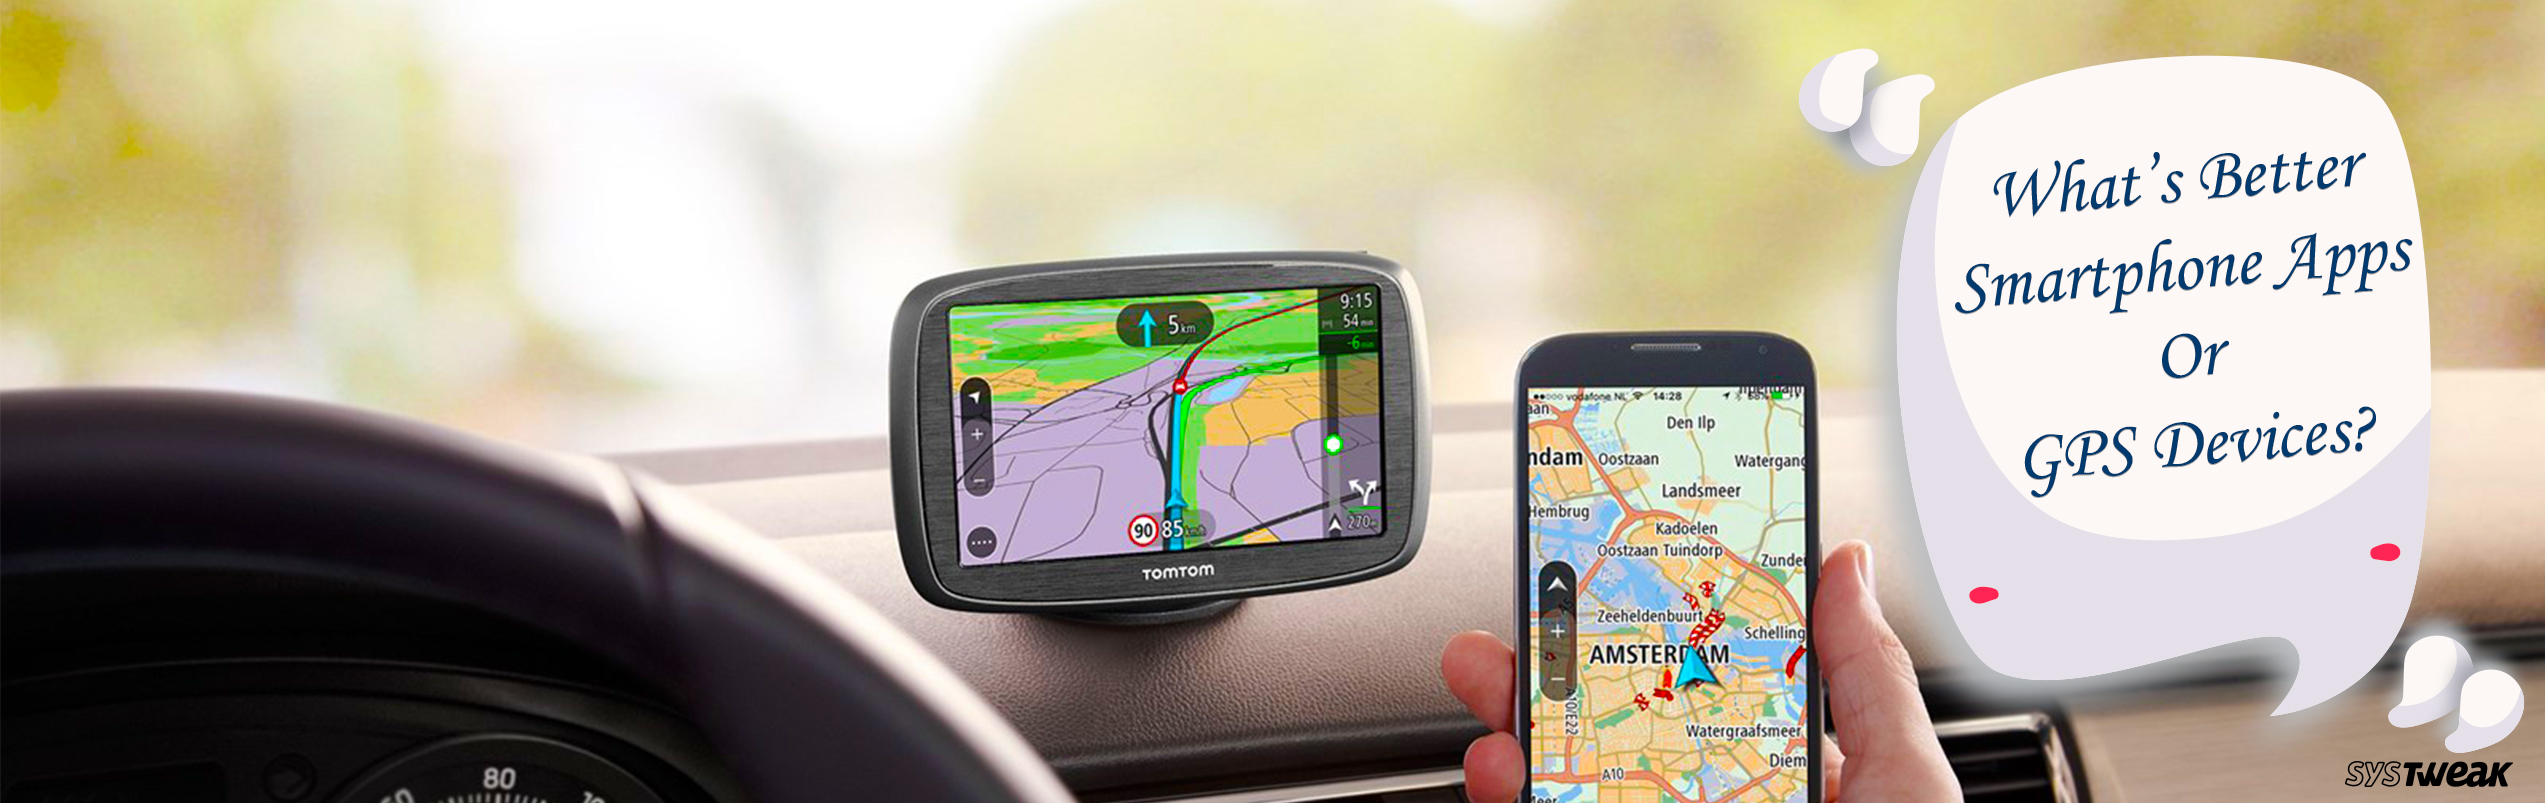 What's Better: Smartphone Apps Or GPS Devices?